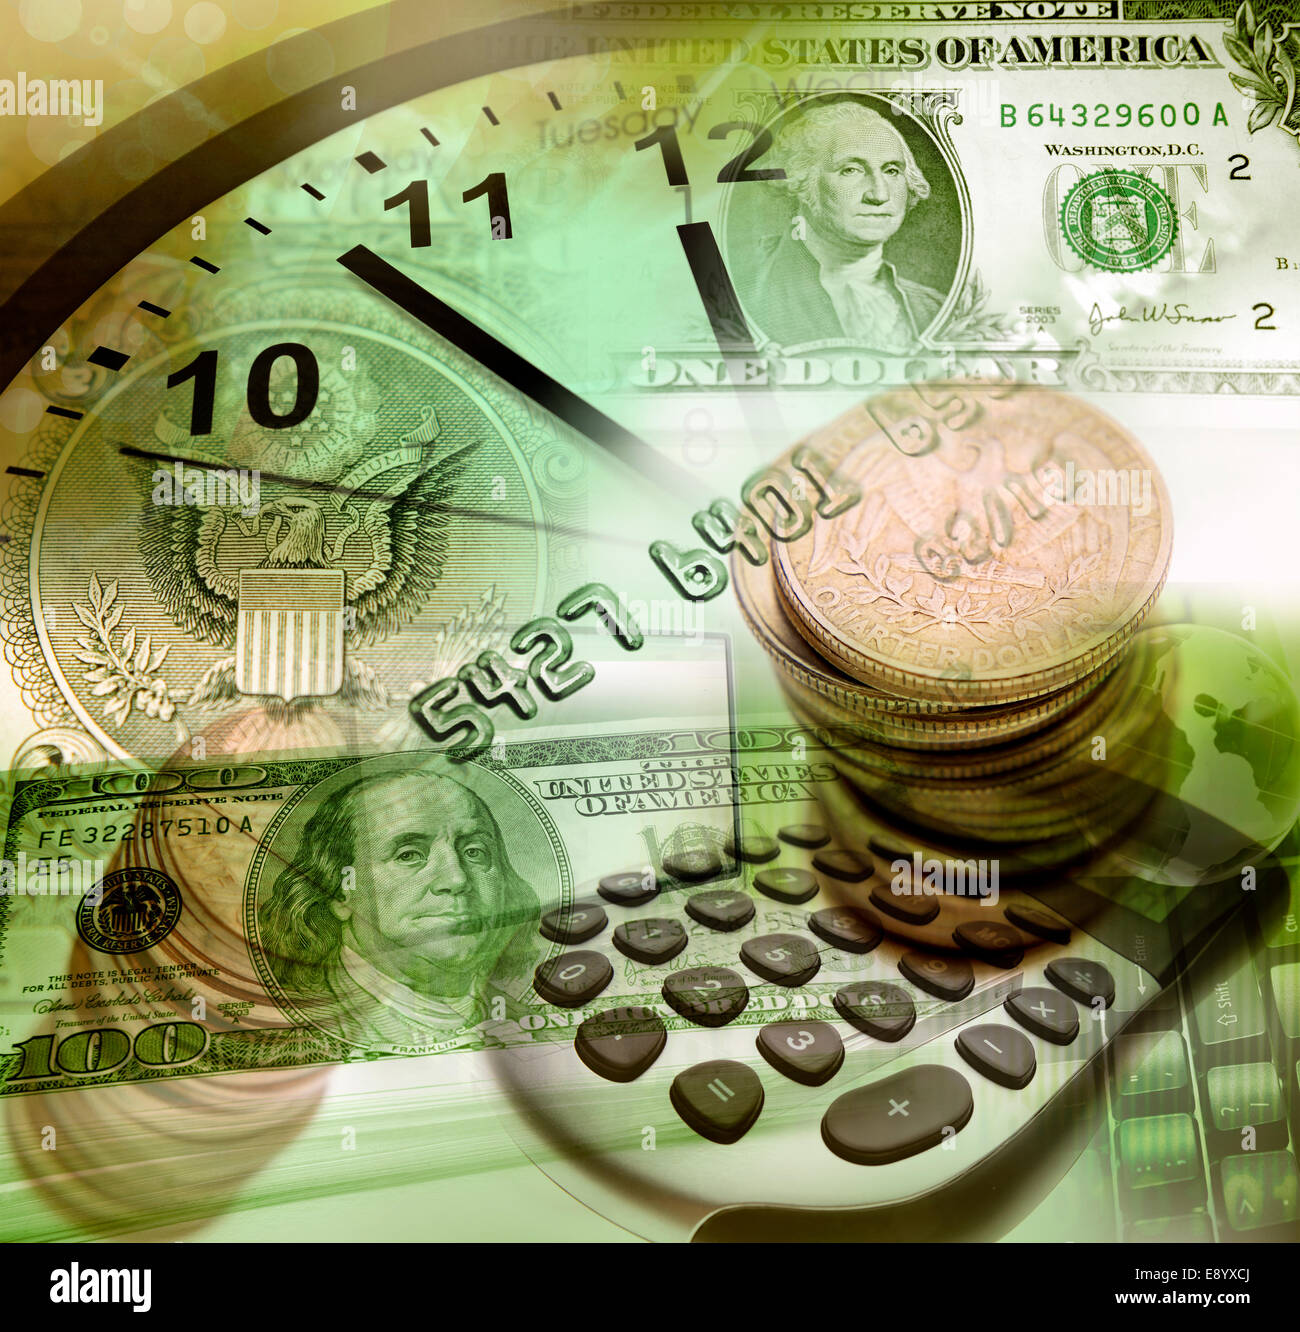 American currency, clock and calculator - Stock Image